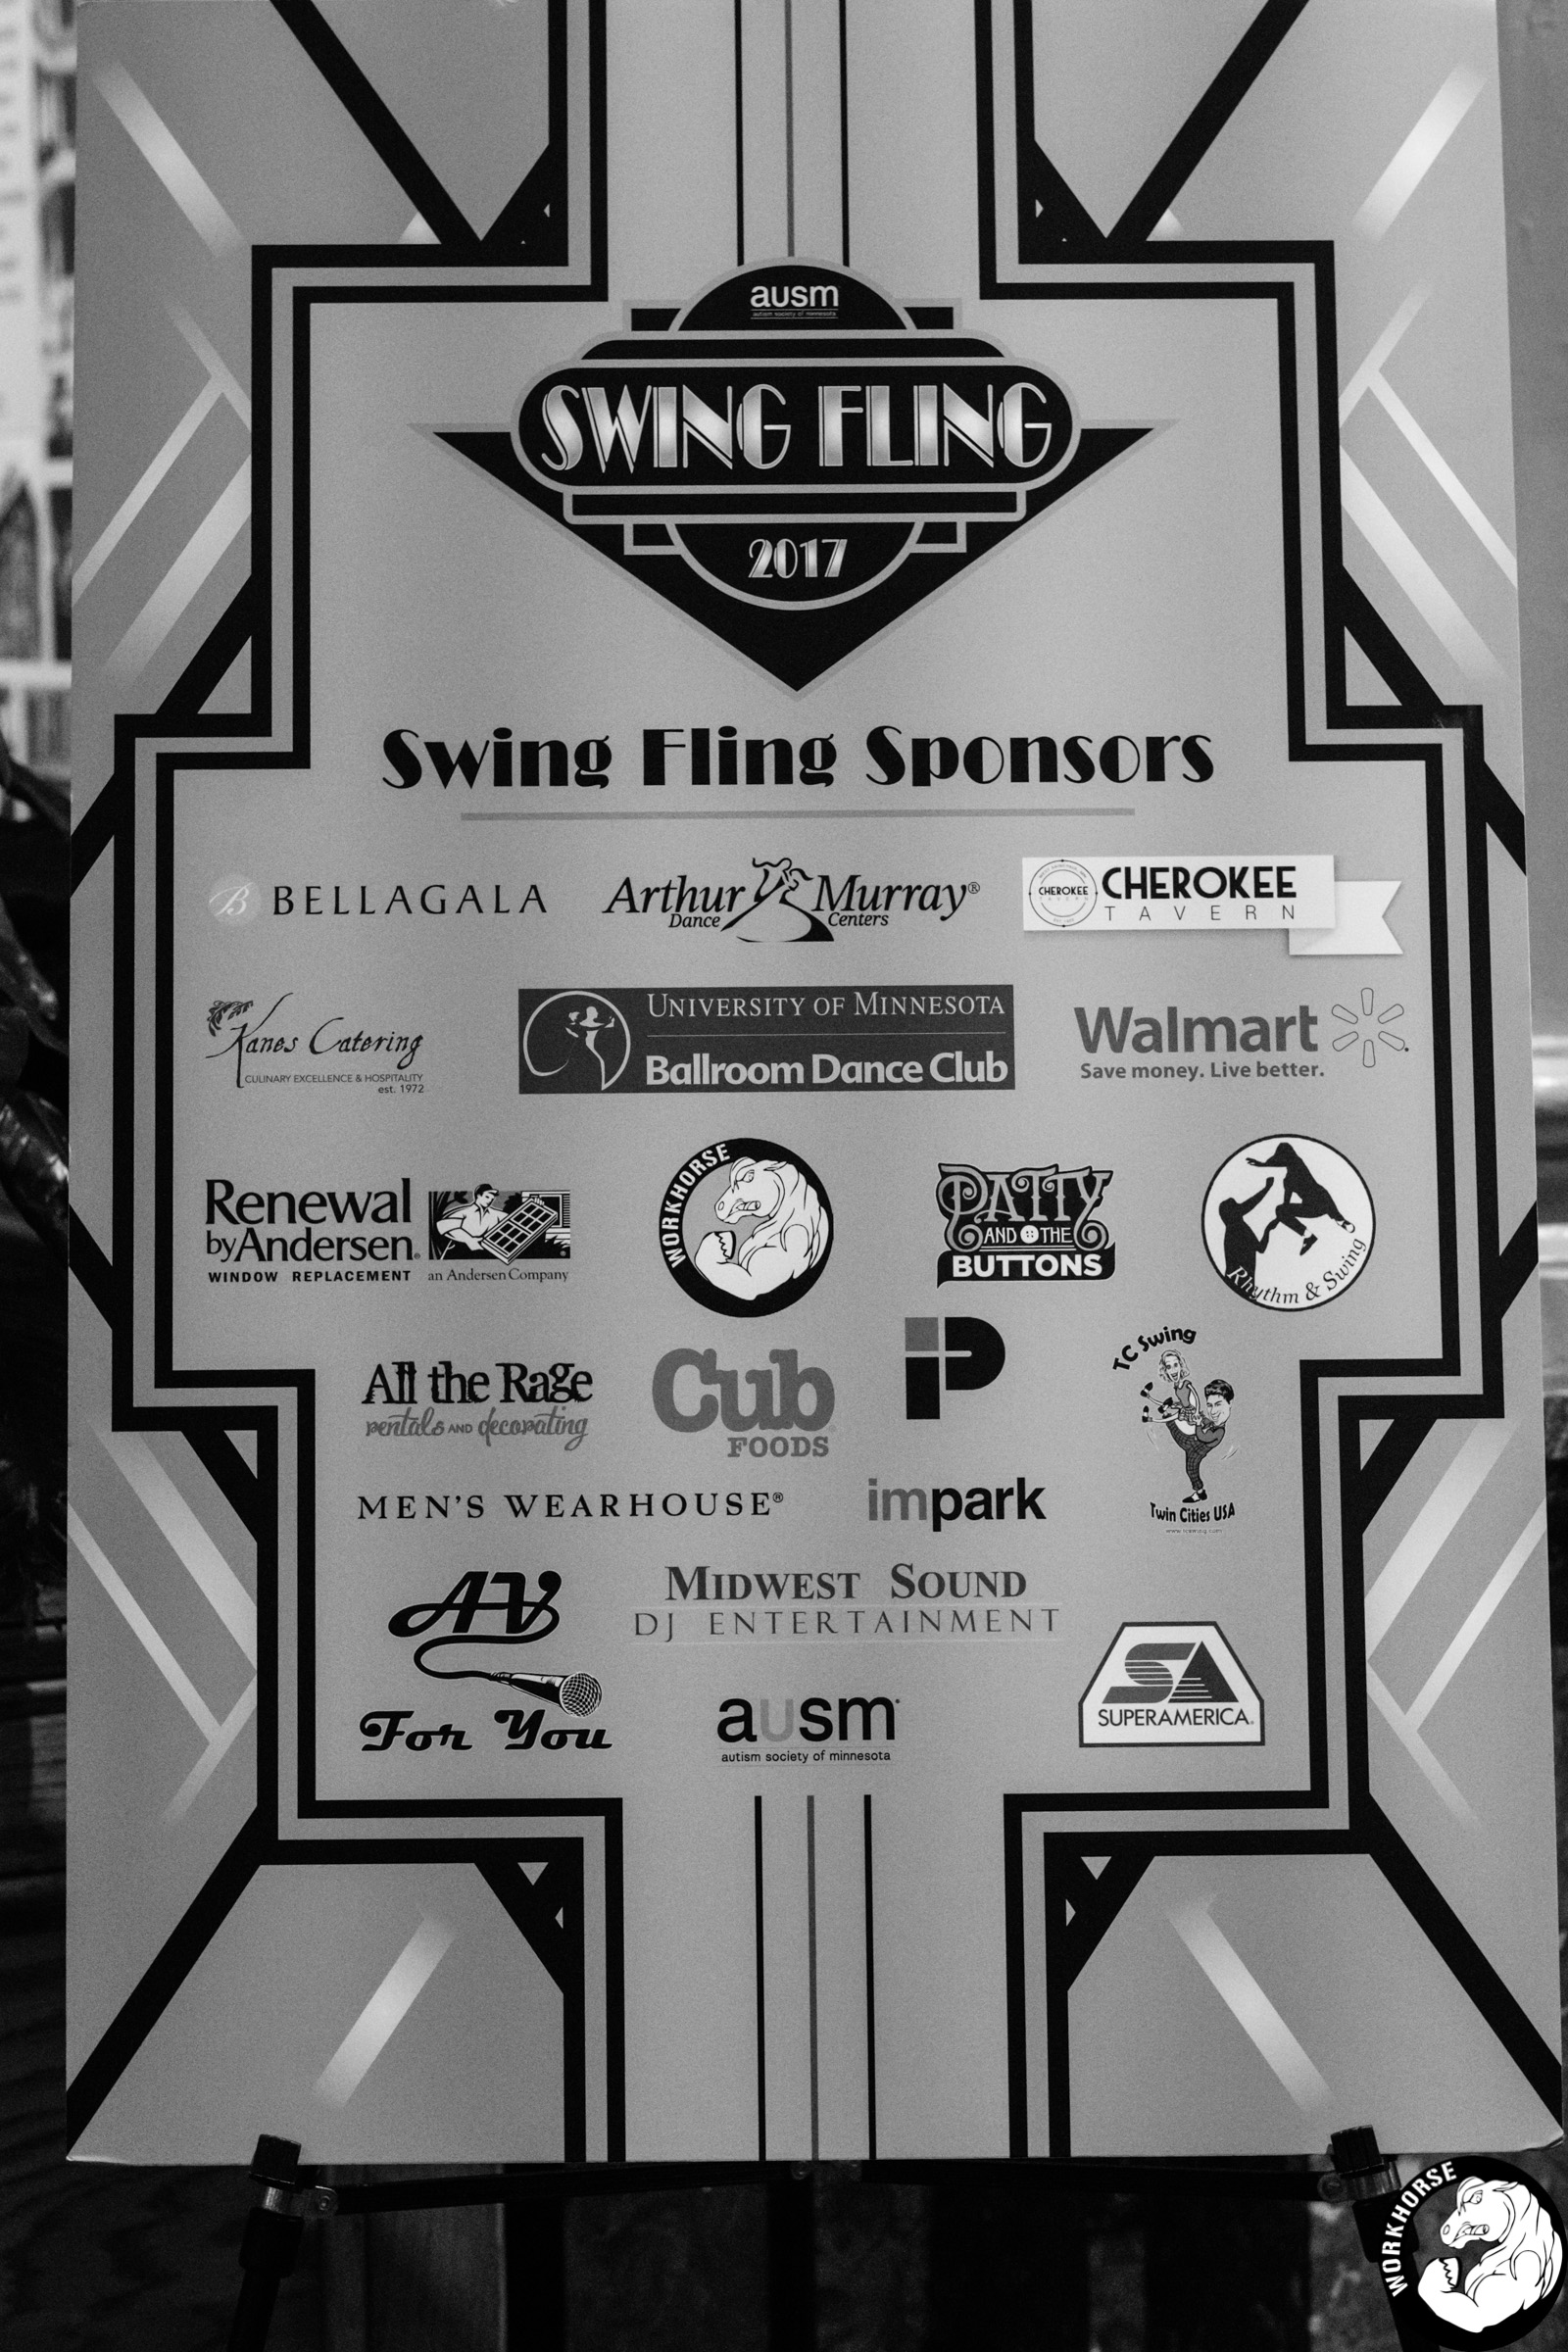 AuSM Swing Fling 2017 (53 of 59).jpg